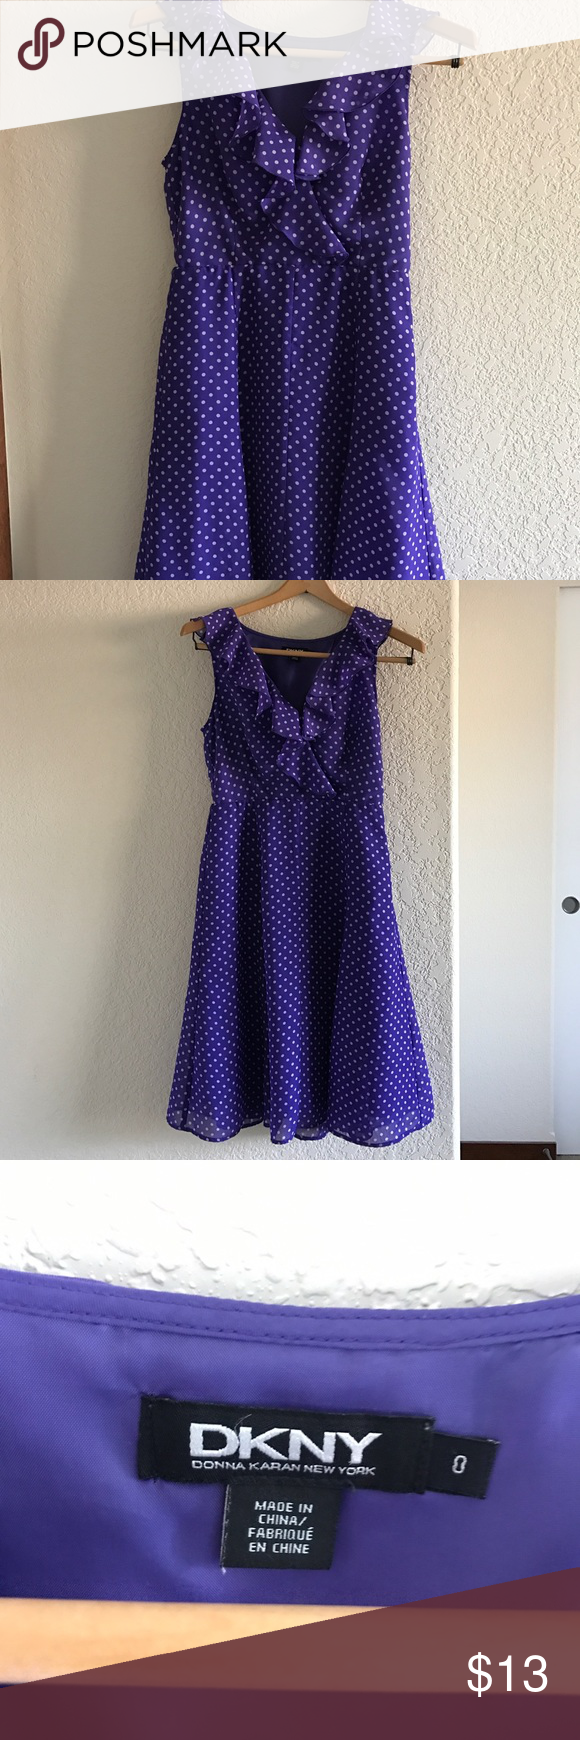 DKNY Purple Polka Dot Dress Size 0 DKNY Purple polka dot dress size 0 in excellent condition. Only worn once for my college commencement ceremony. DKNY Dresses Midi